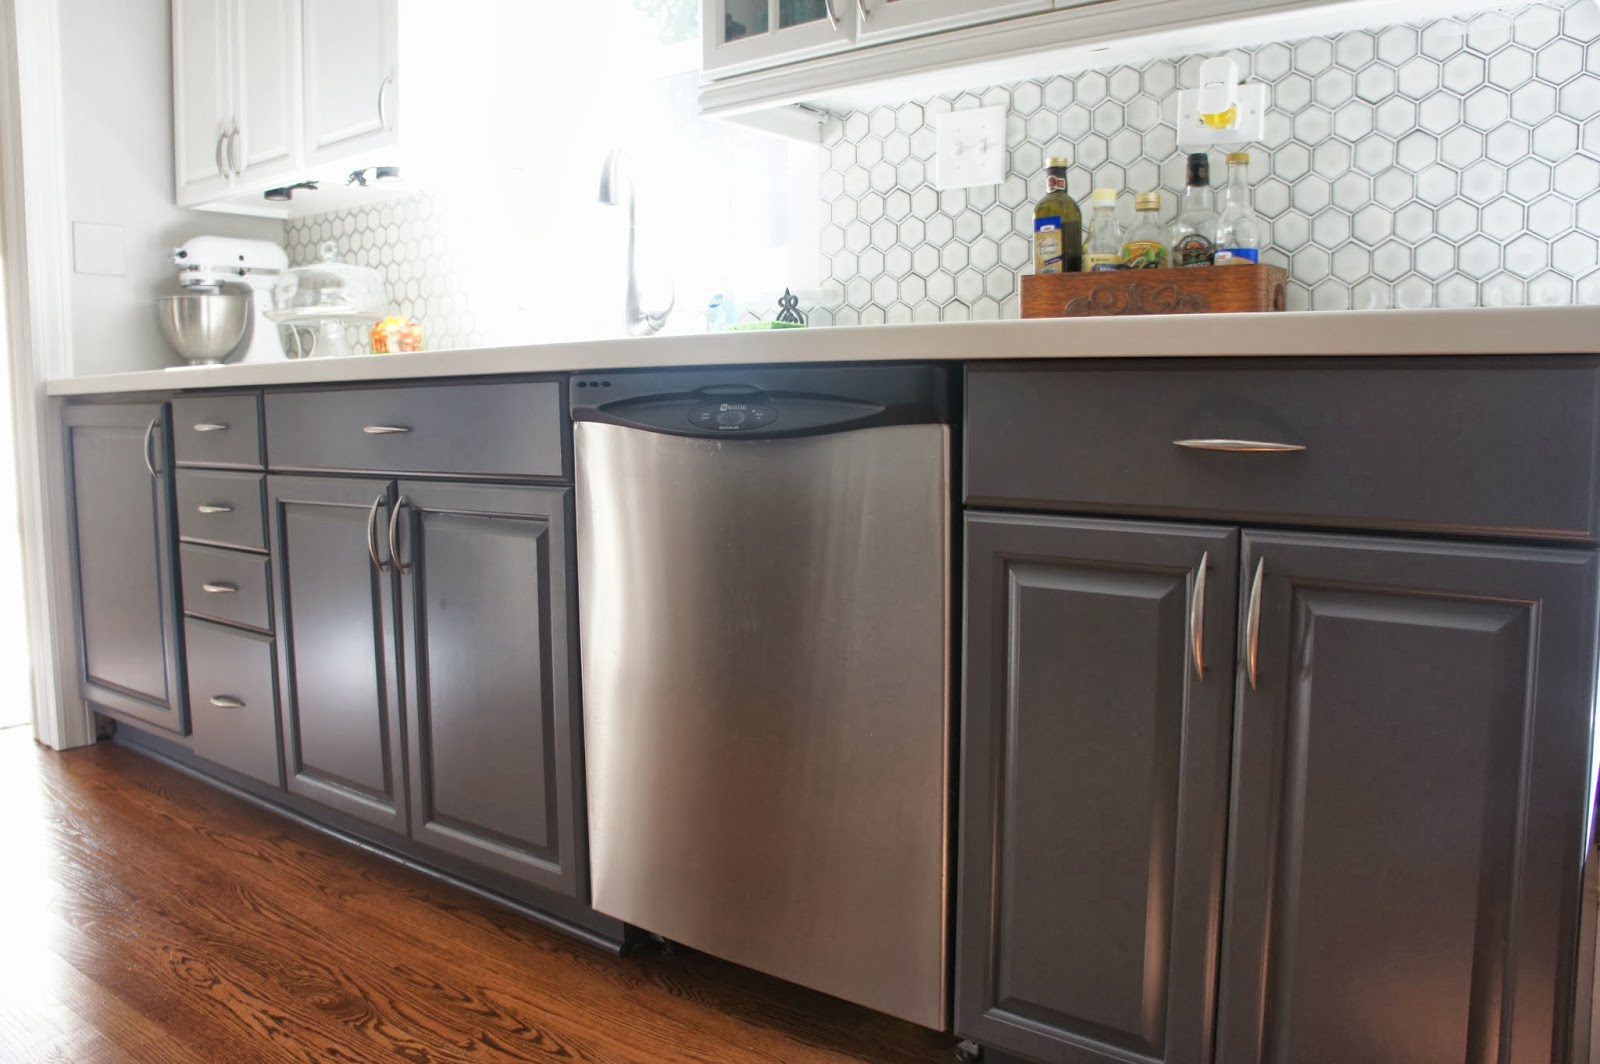 Marvelous lower cabinets painted gray LoveLee Homemaker featured on Remodelaholic